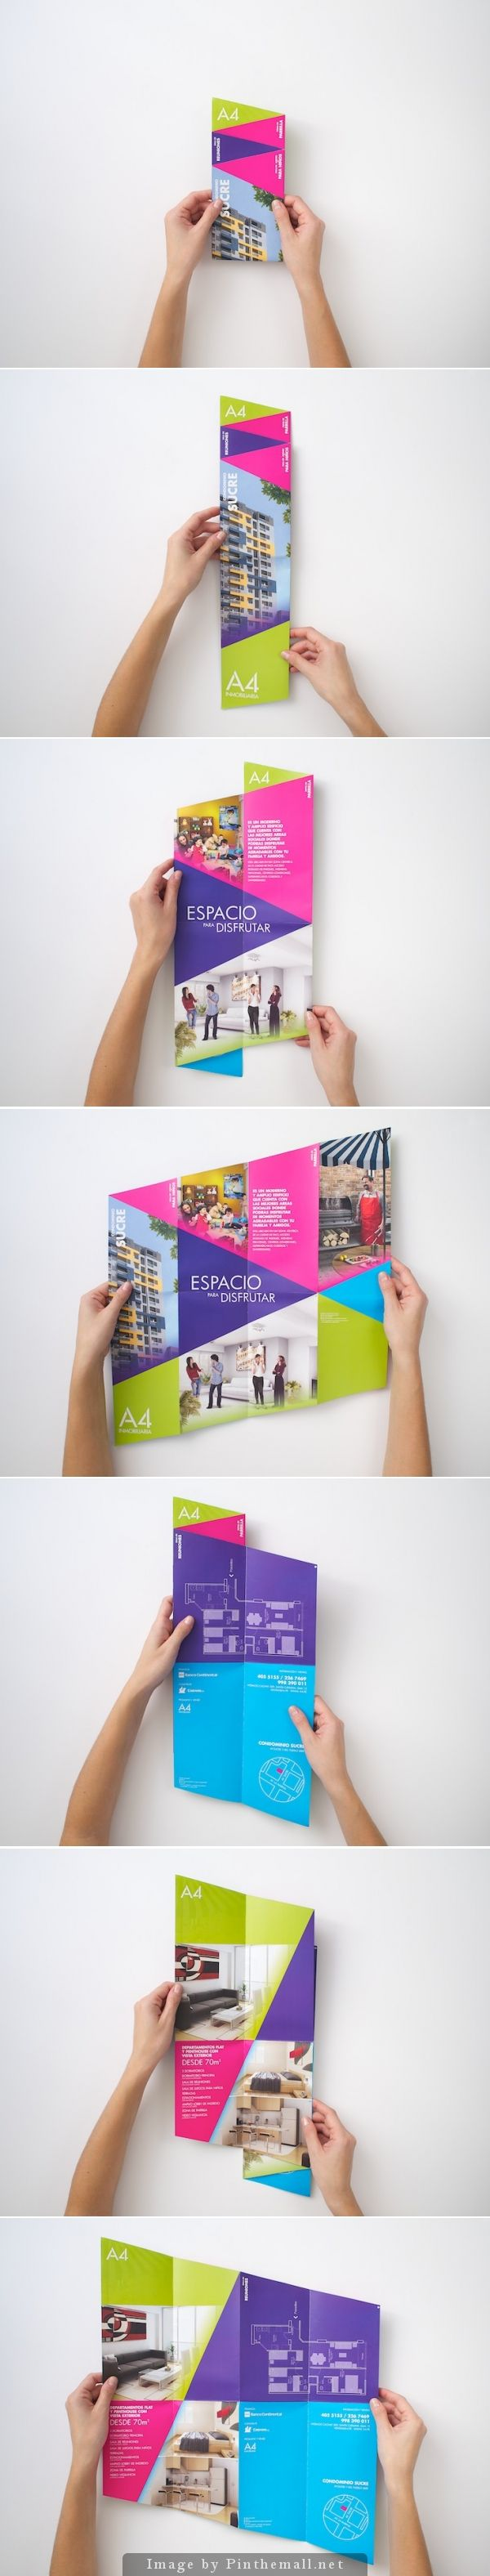 Love this brochure! The bright colors and the shape of it, make it fun, new and exciting!